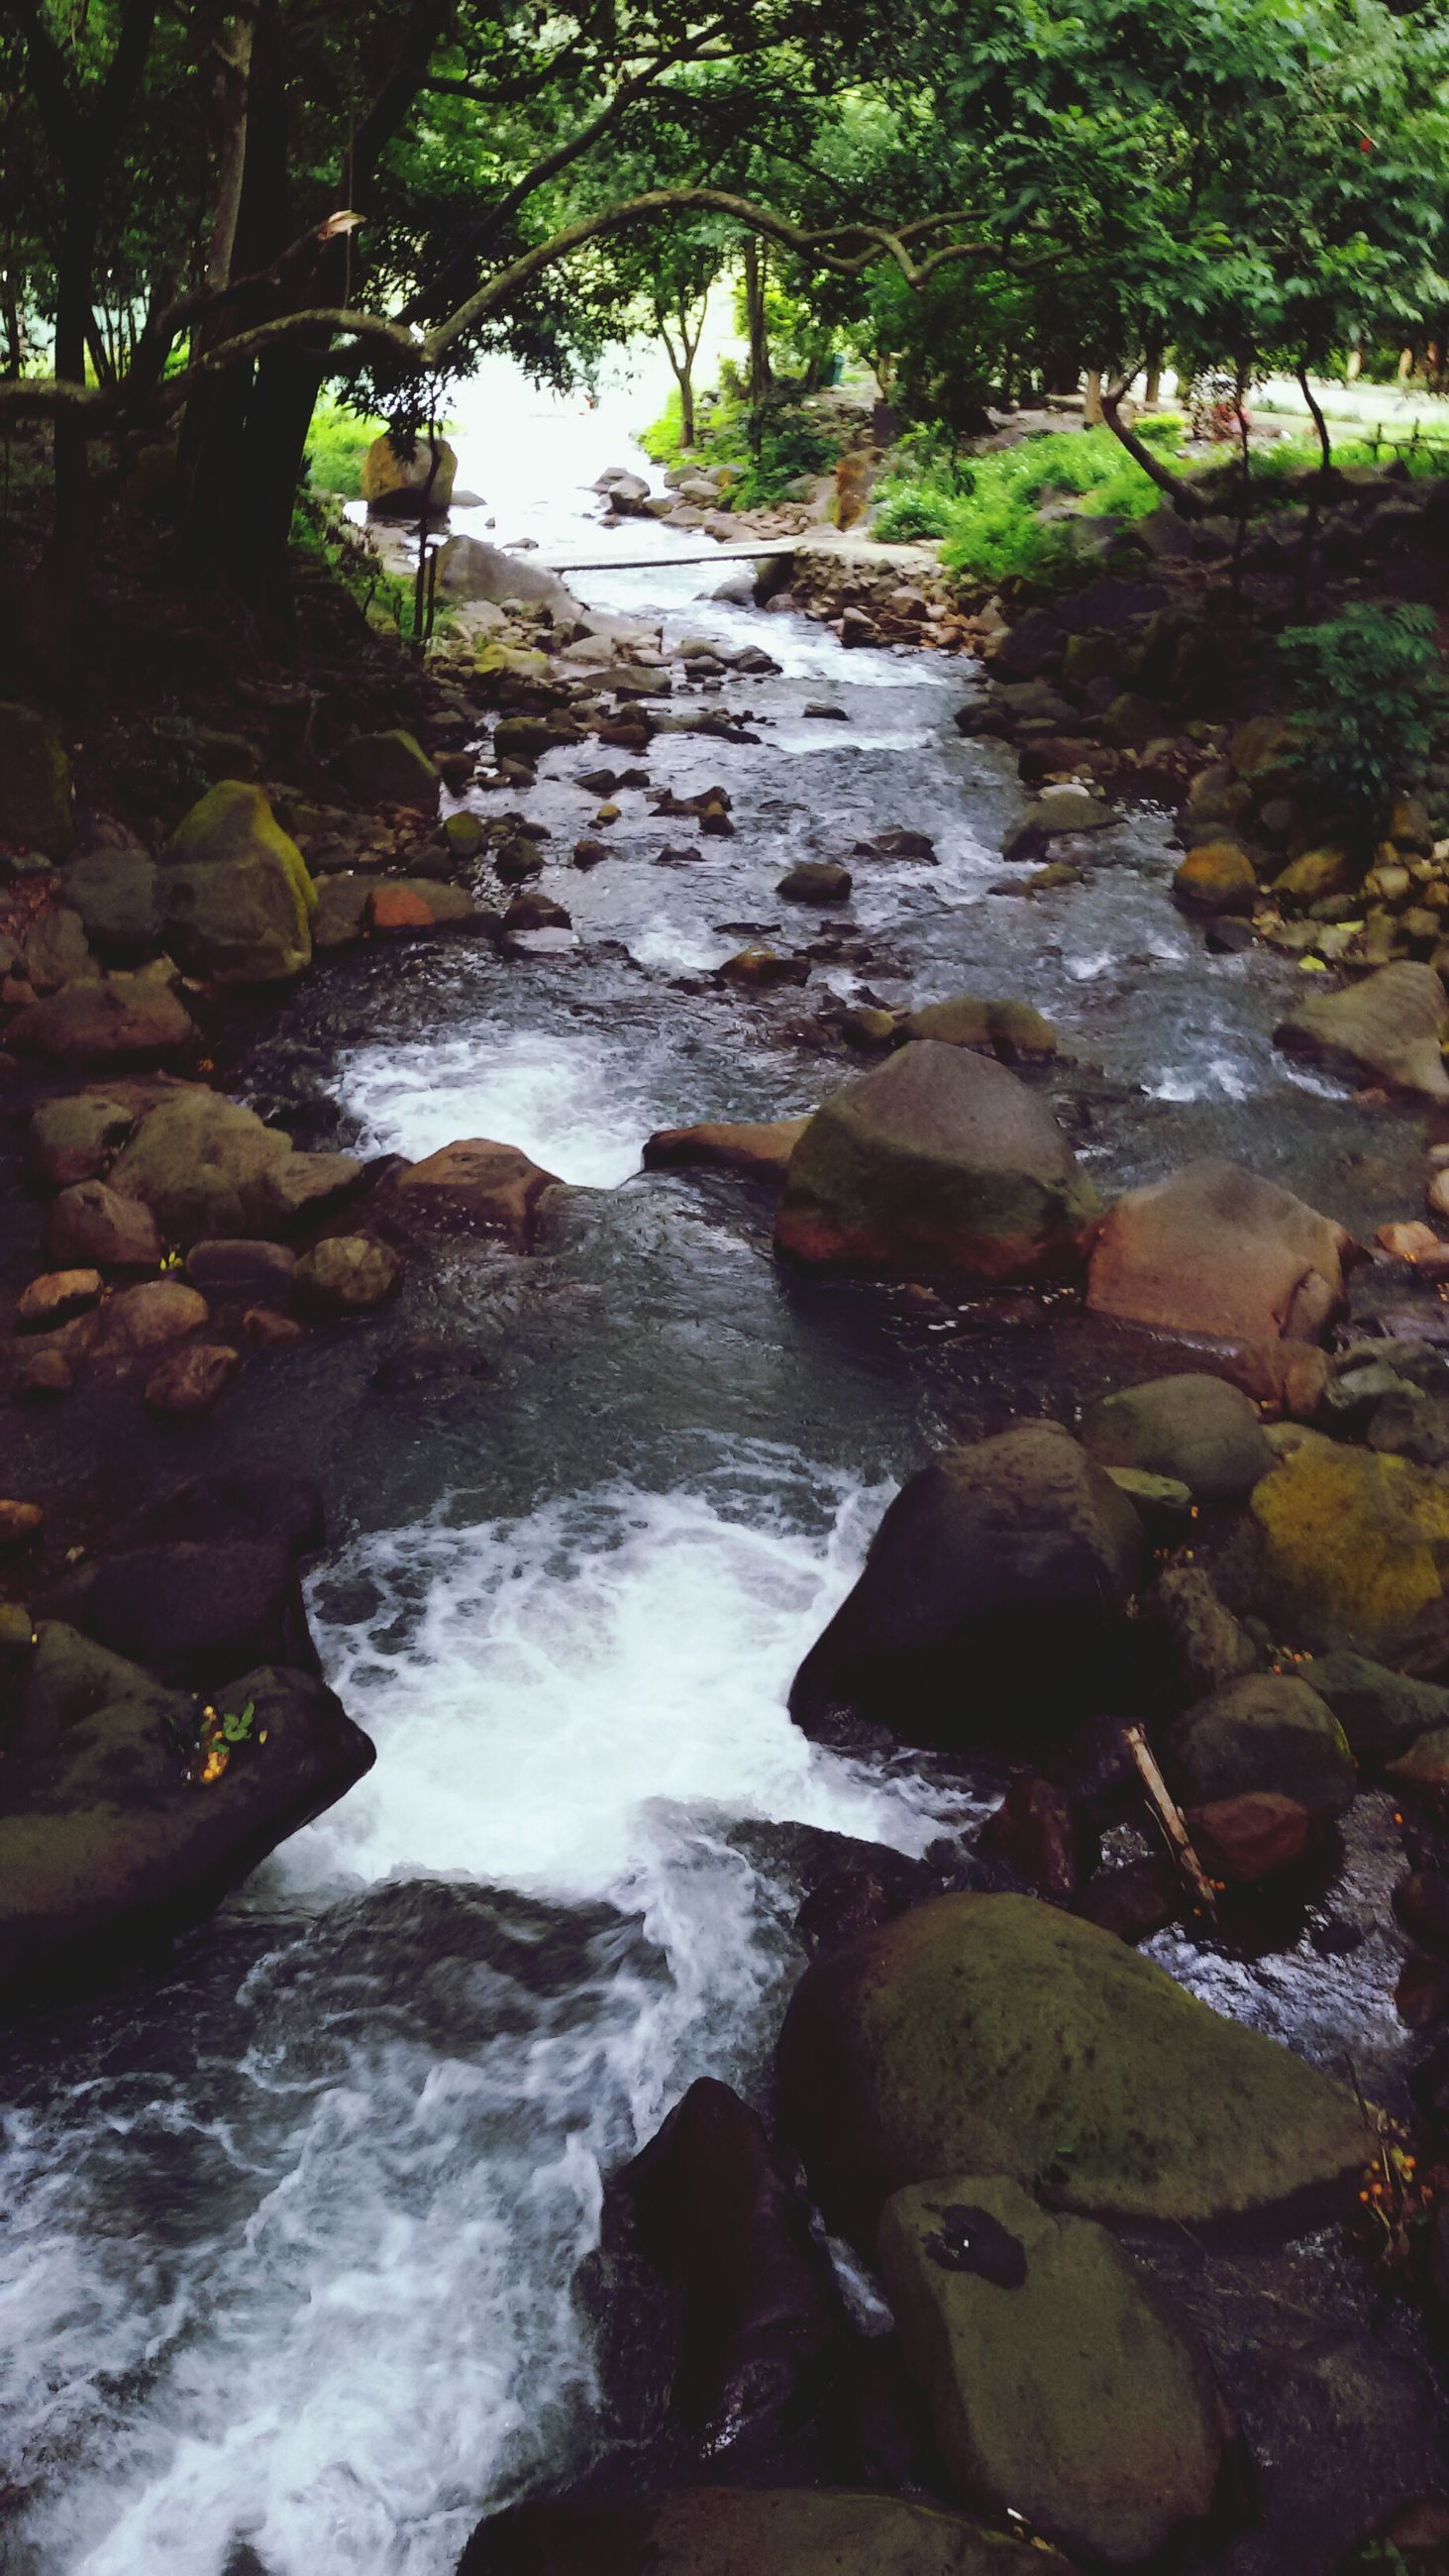 water, flowing water, rock - object, flowing, stream, motion, forest, beauty in nature, nature, tree, waterfall, scenics, river, long exposure, tranquility, tranquil scene, outdoors, day, rock, no people